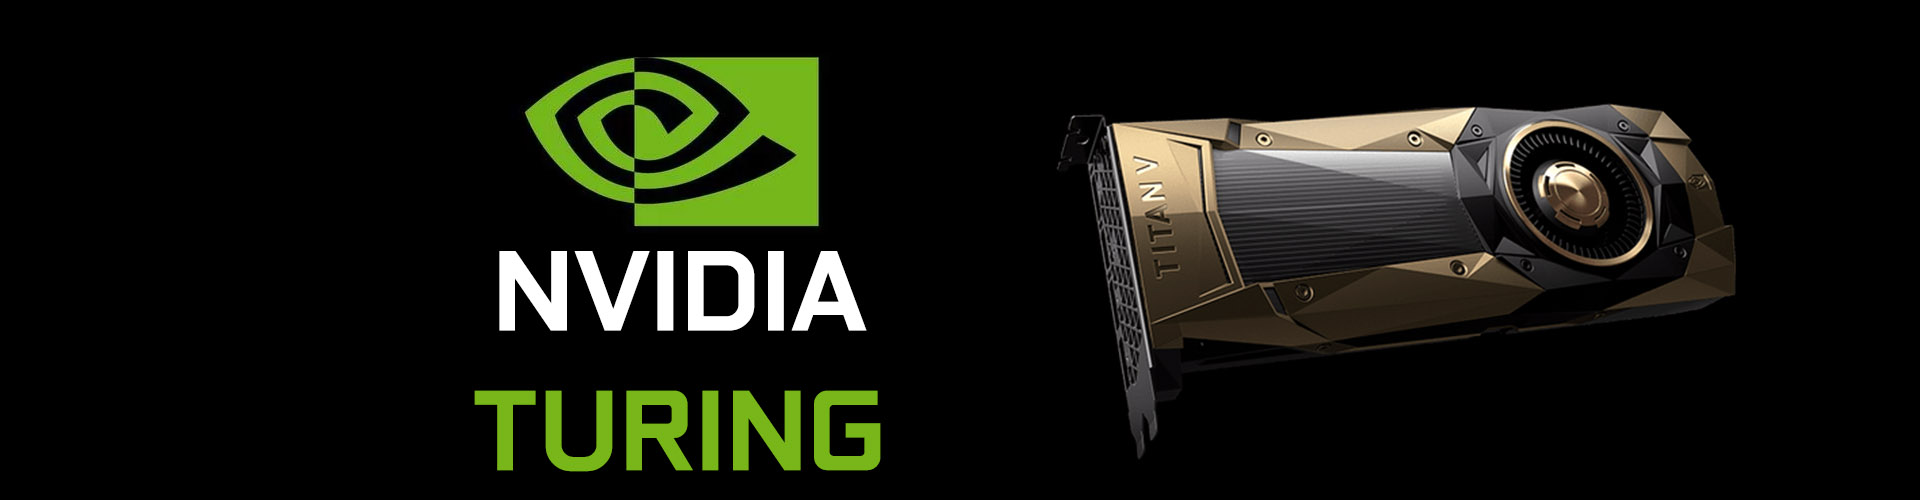 NVIDIA Turing – Release Date, Specifications, Price, and Performance